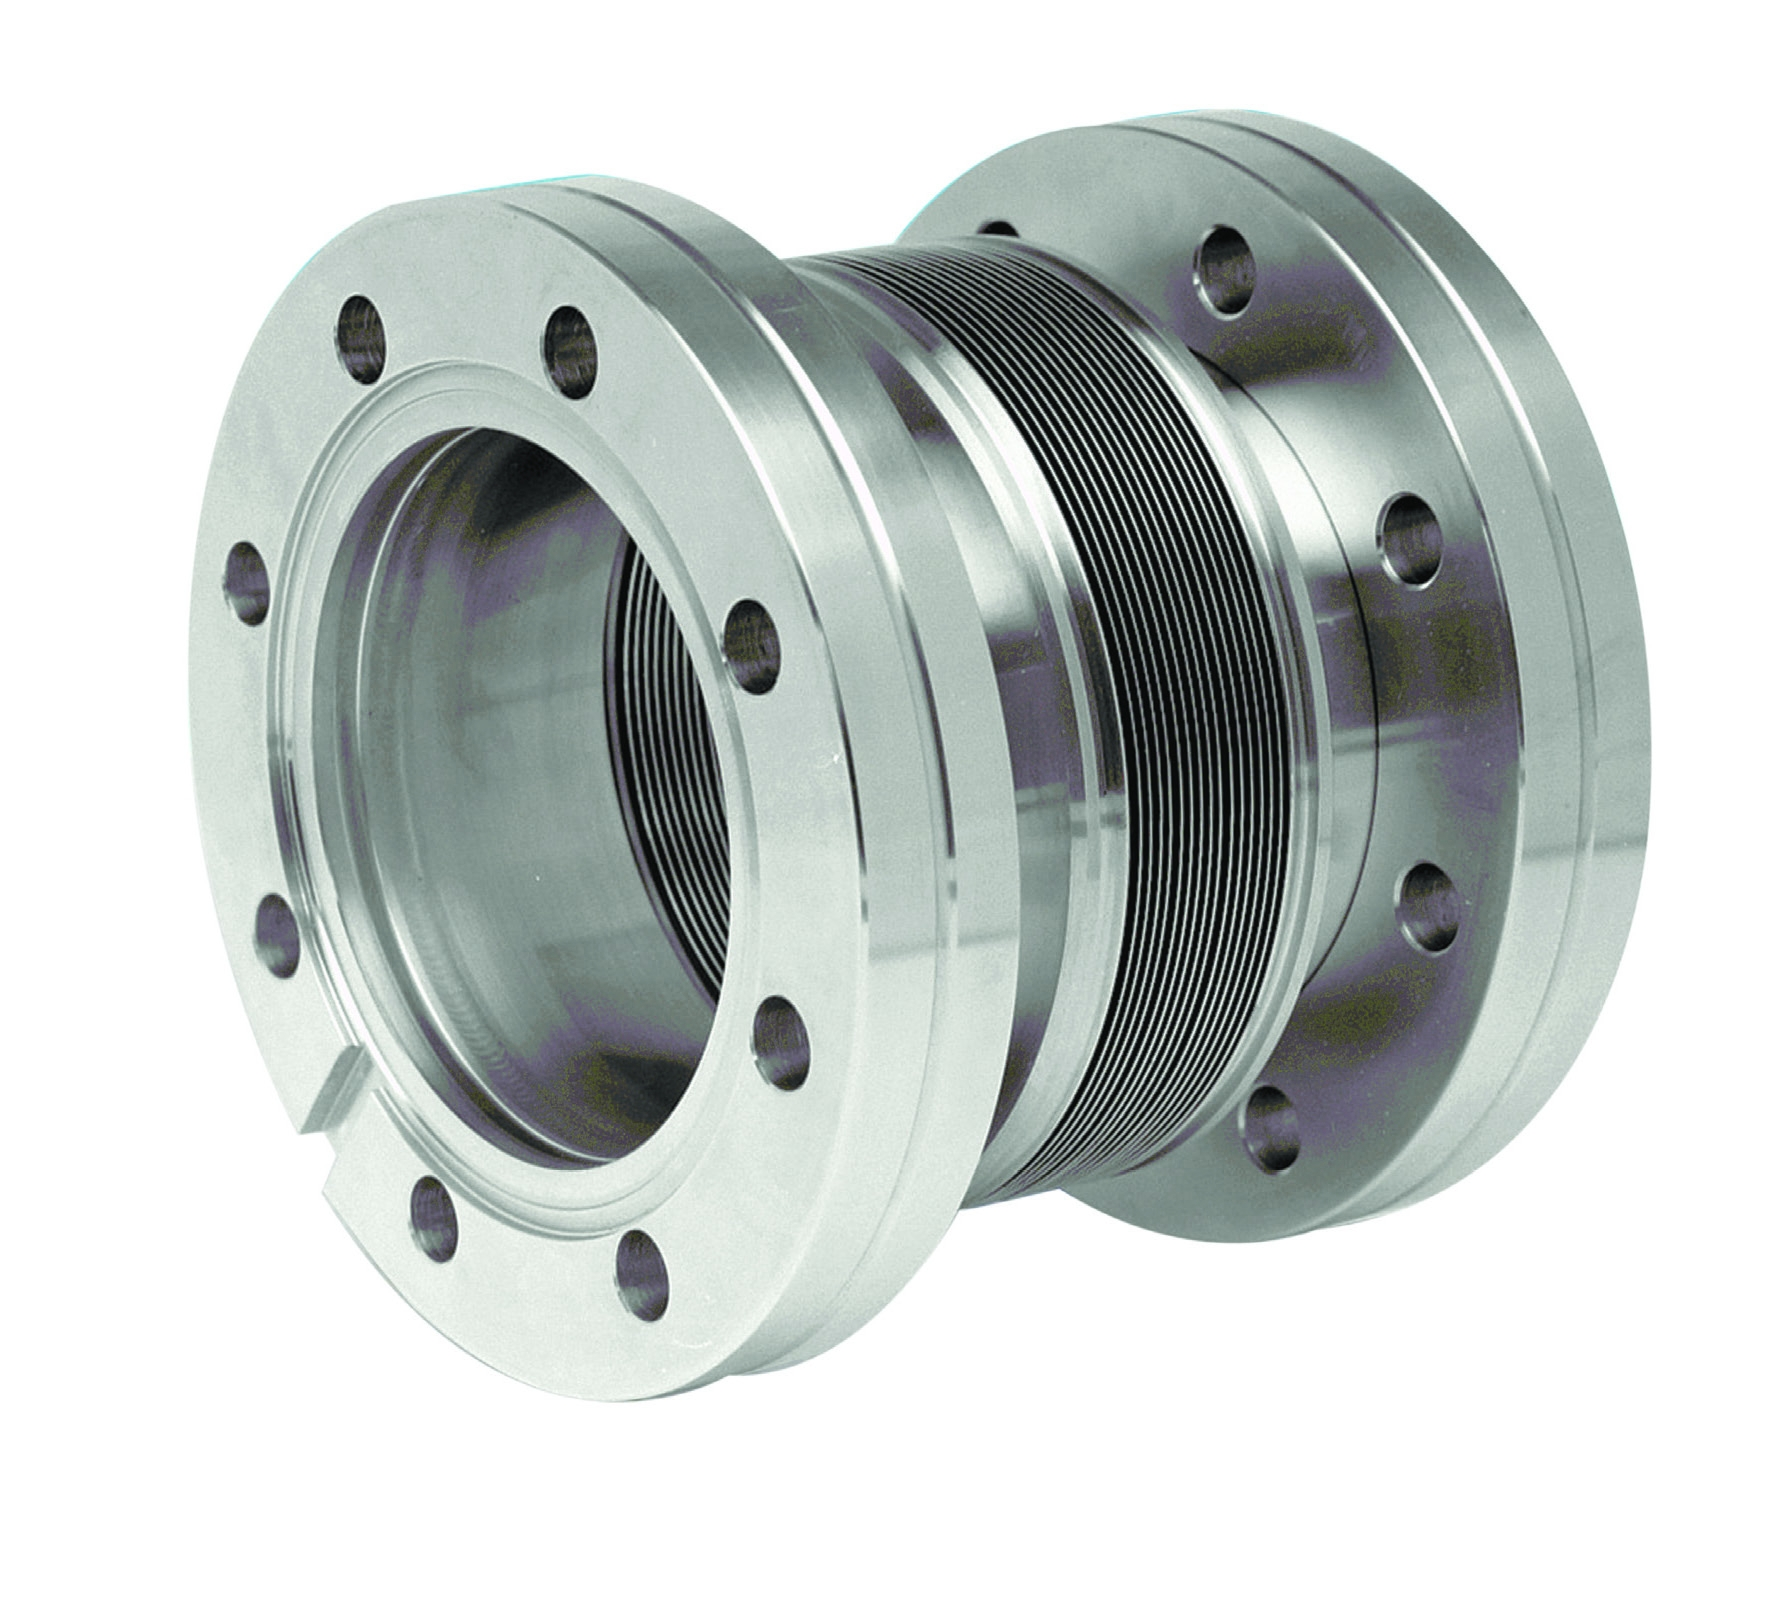 Edge welded bellow with DN100CF flanges, L = 112 - 262mm